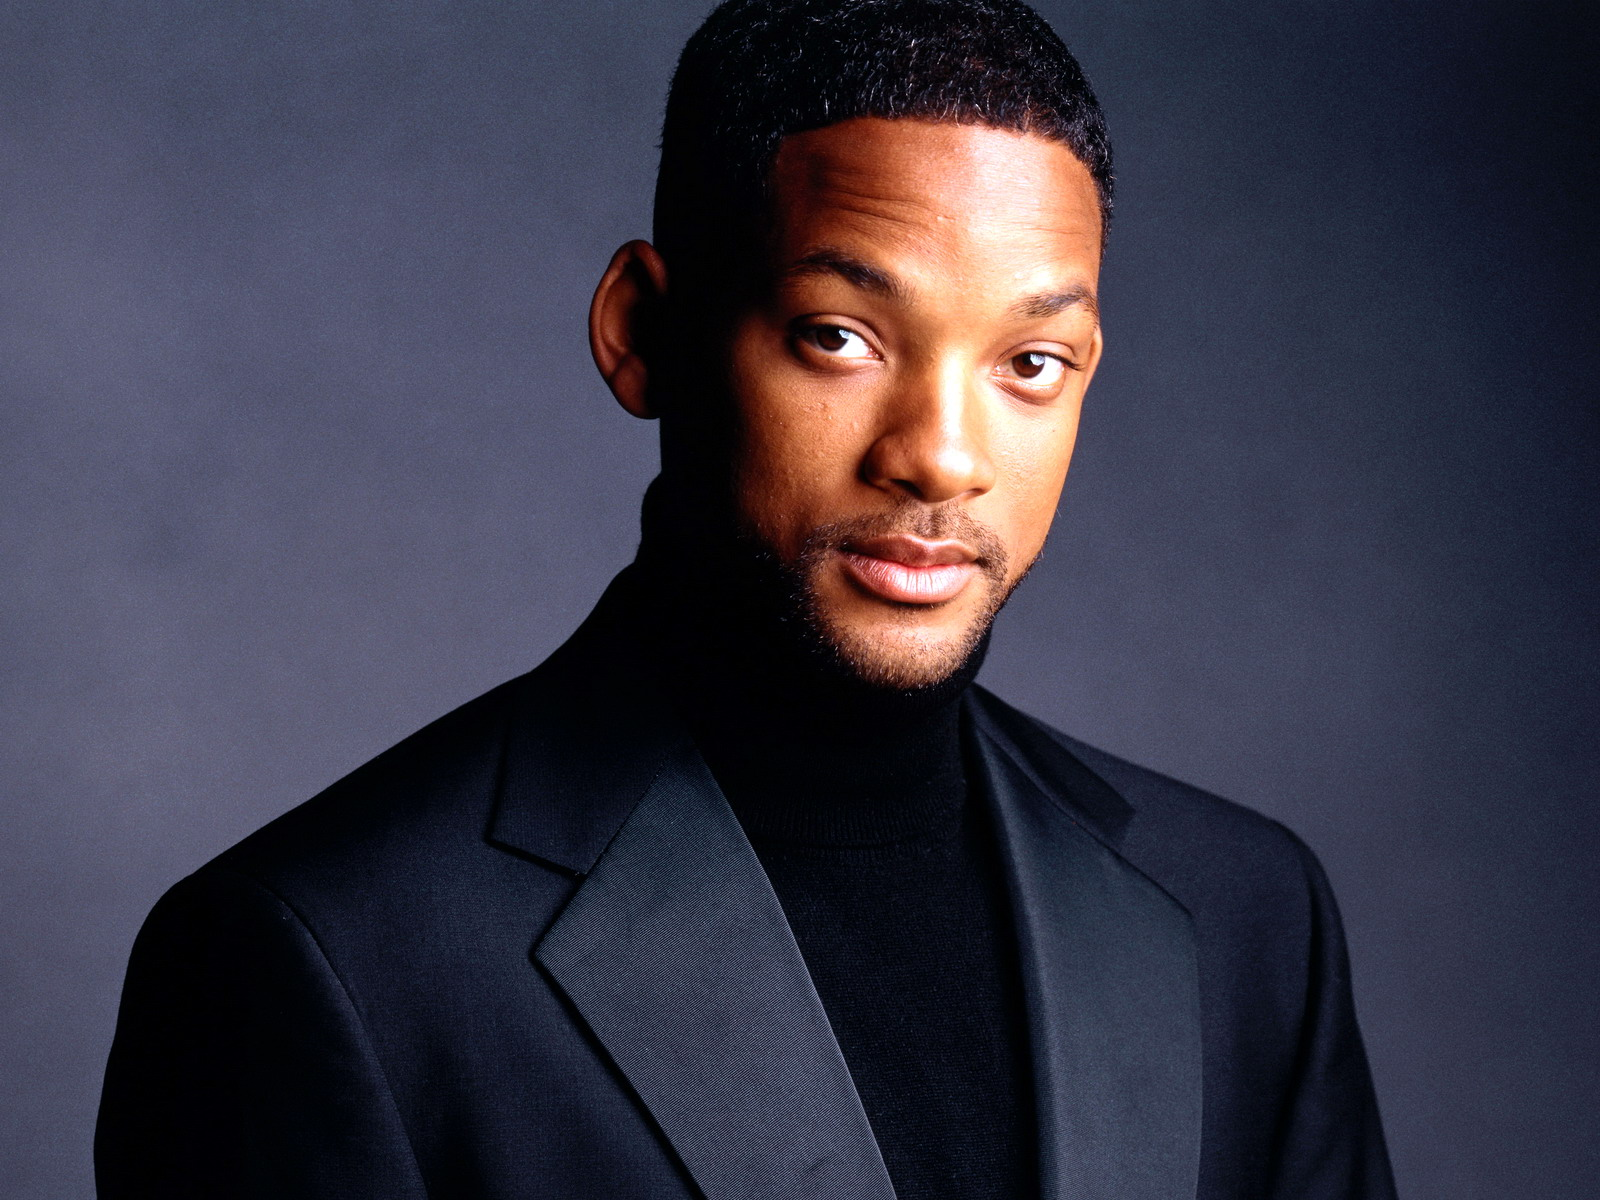 will-smith-image2